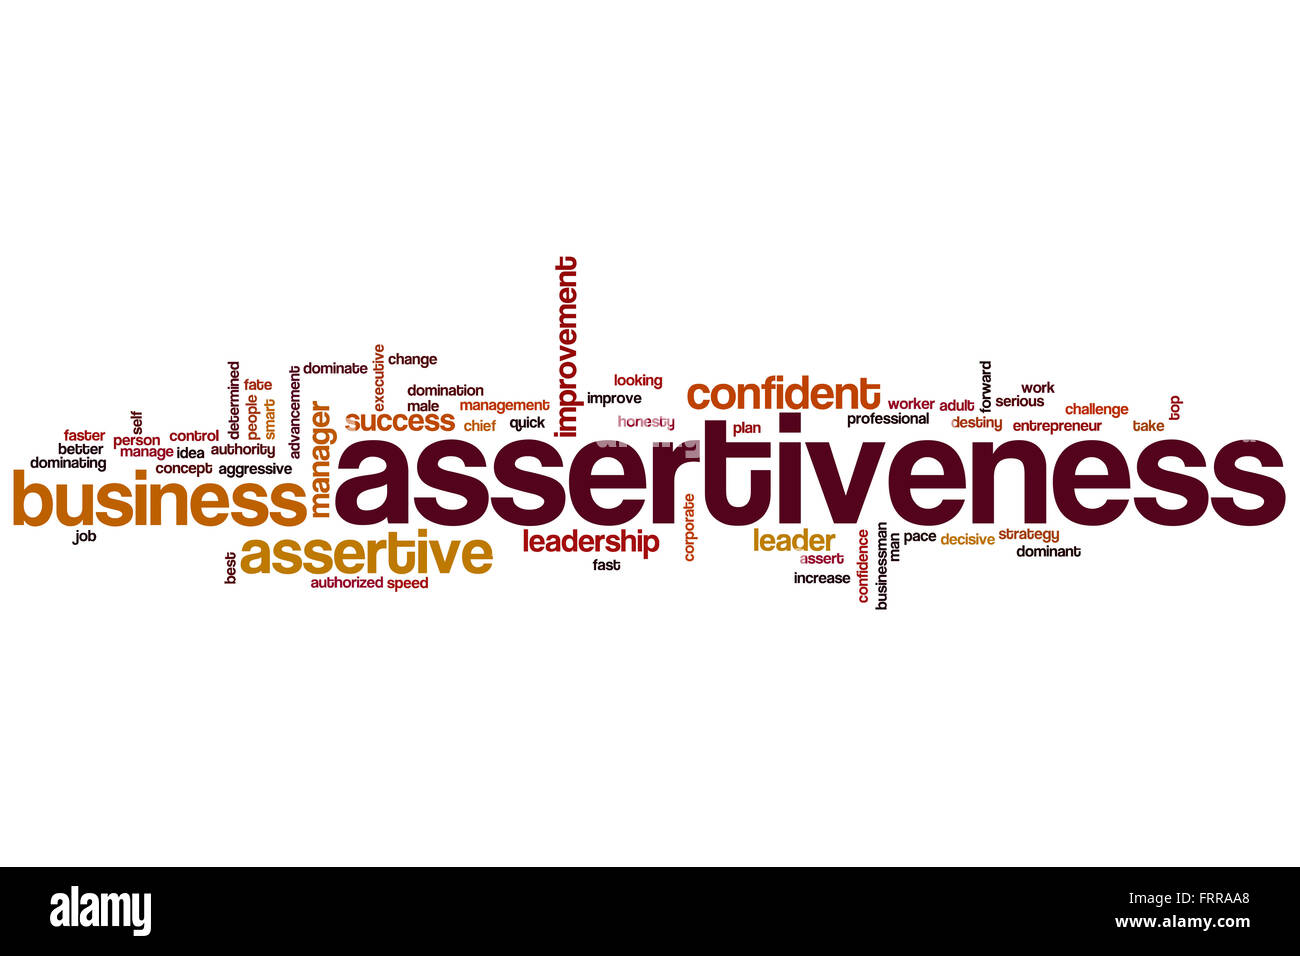 Assertiveness Word Cloud Concept Stock Photo